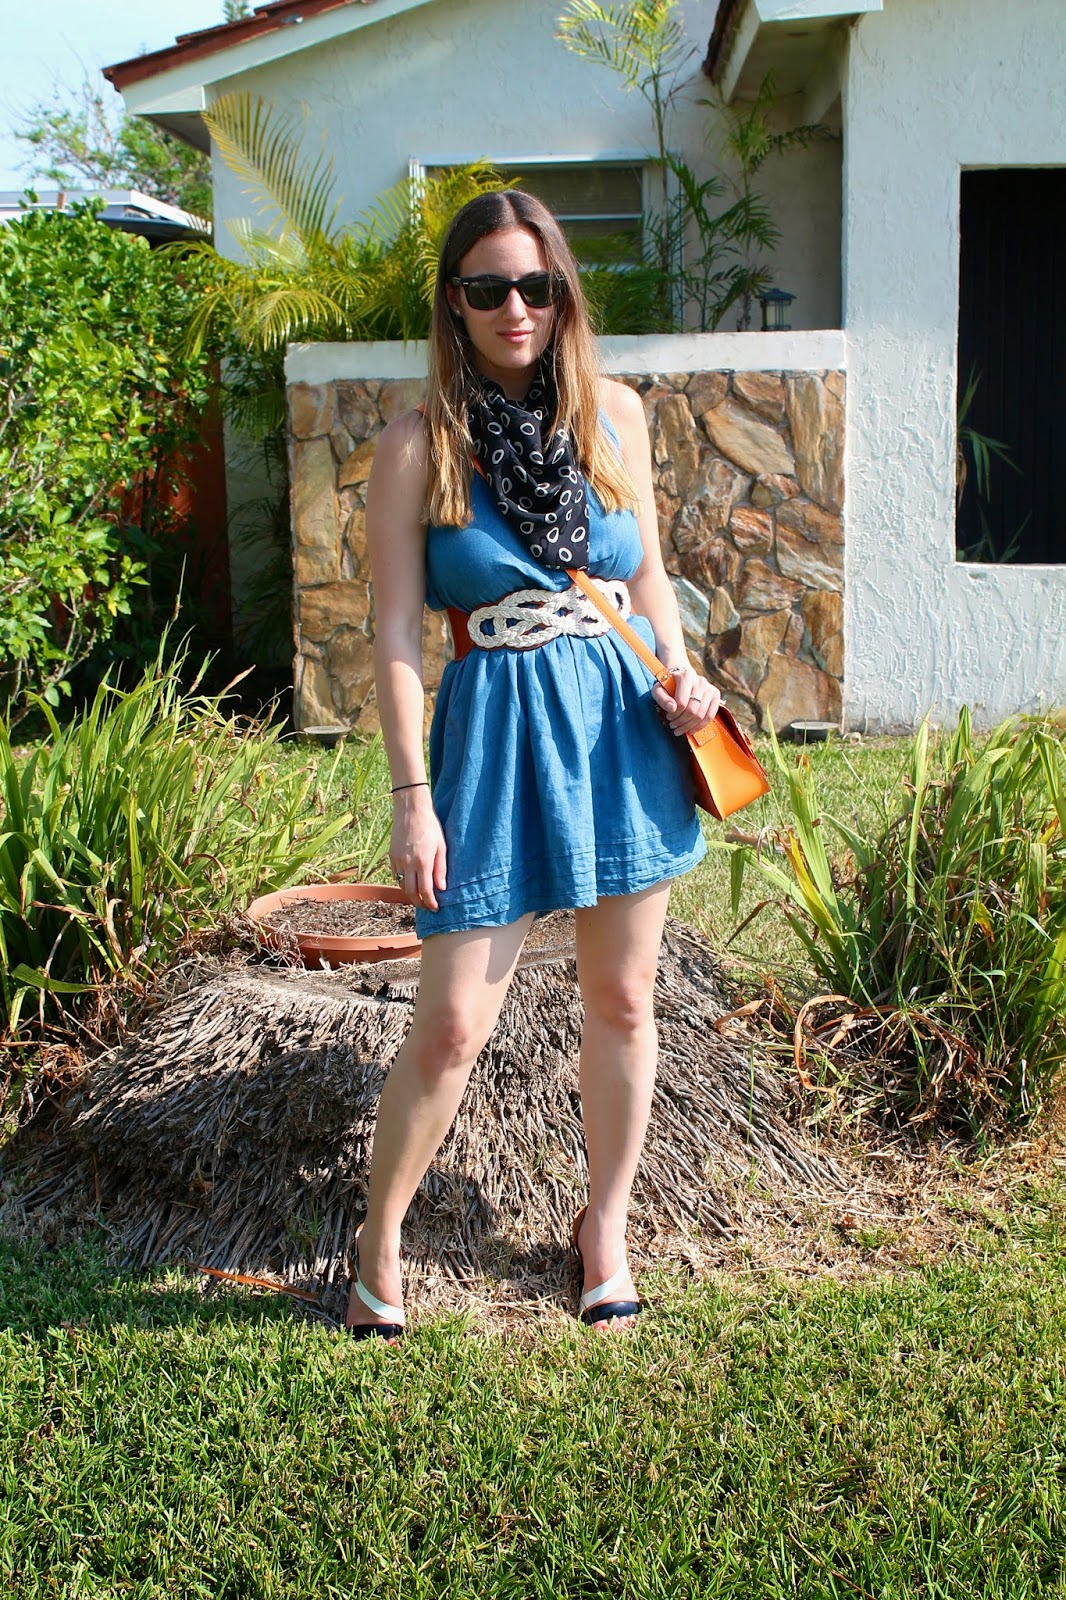 Anthropologie, Kate Spade, Loehmann's, Kenneth Cole, Ray-Ban, vintage, prep, southern, Miami, Palm Beach, fashion blog, what I wore, blogger's style, Miami fashion, summer fashion